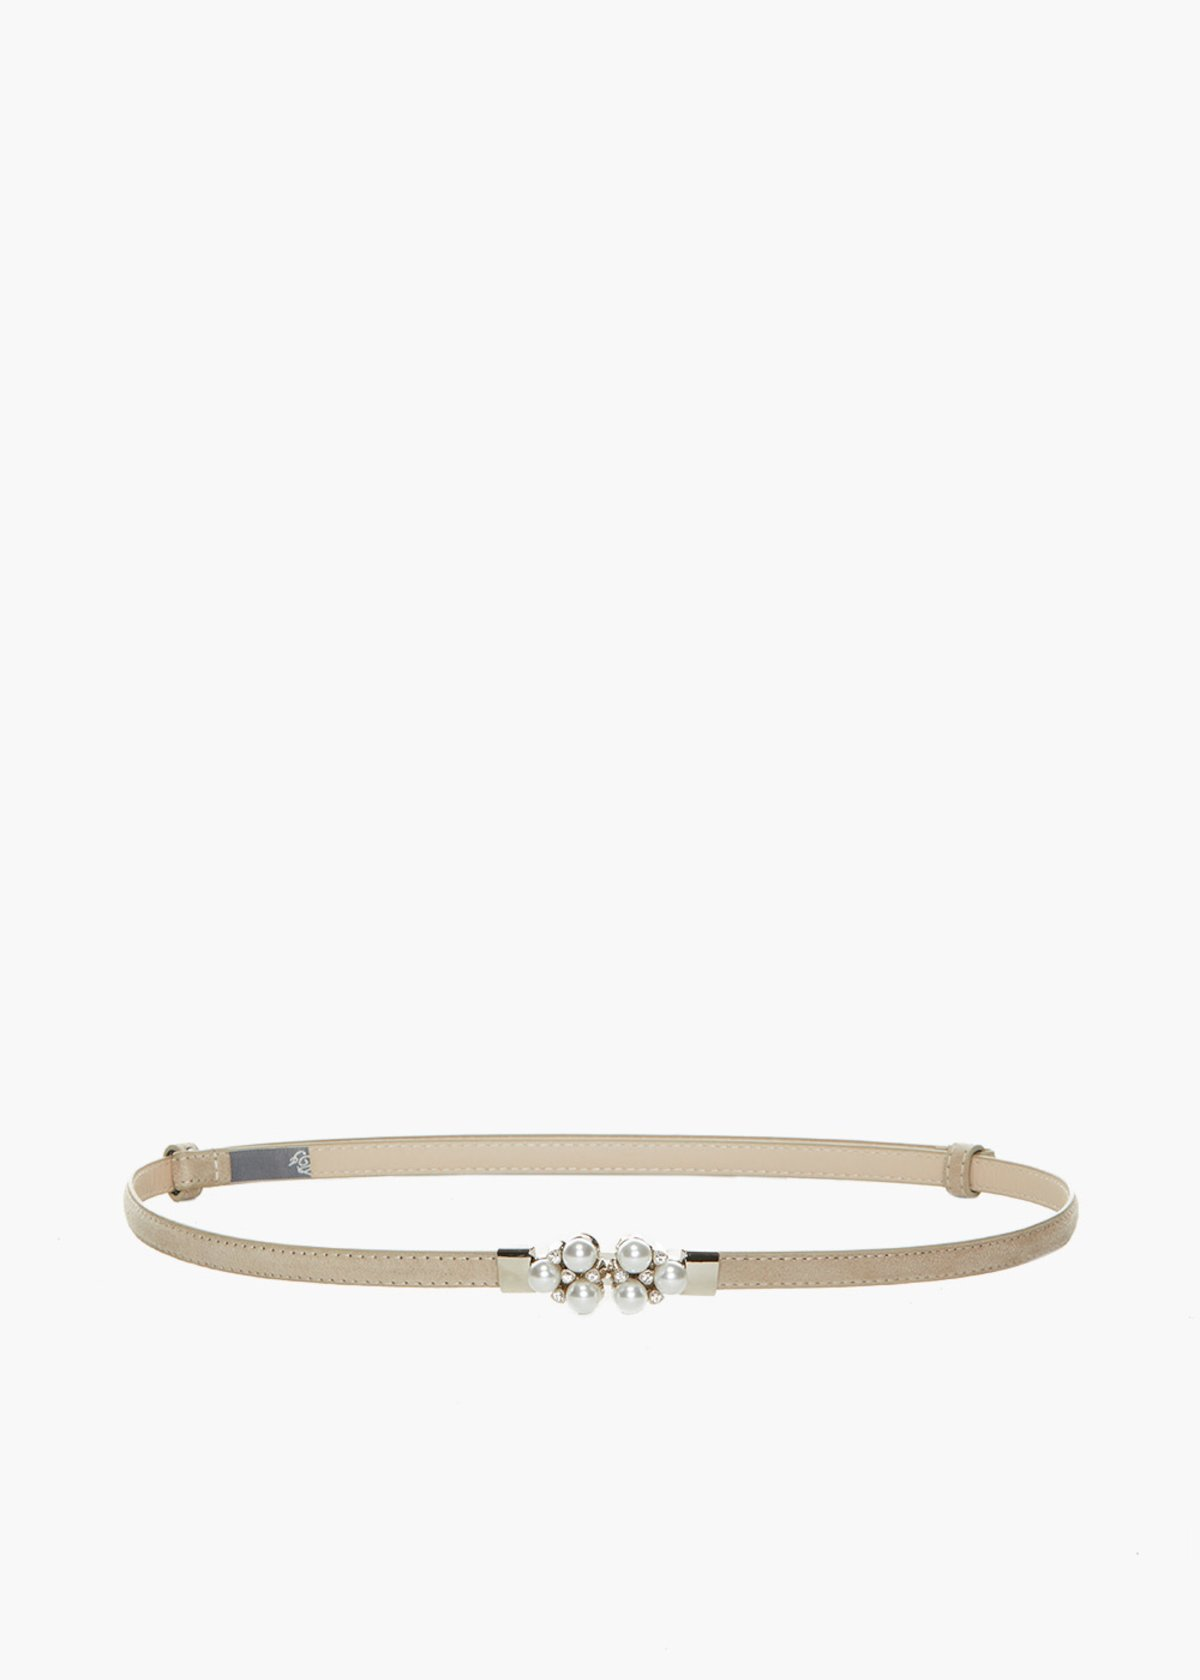 Faux suede Craia belt with pearls and crystal detail - Light Beige - Woman